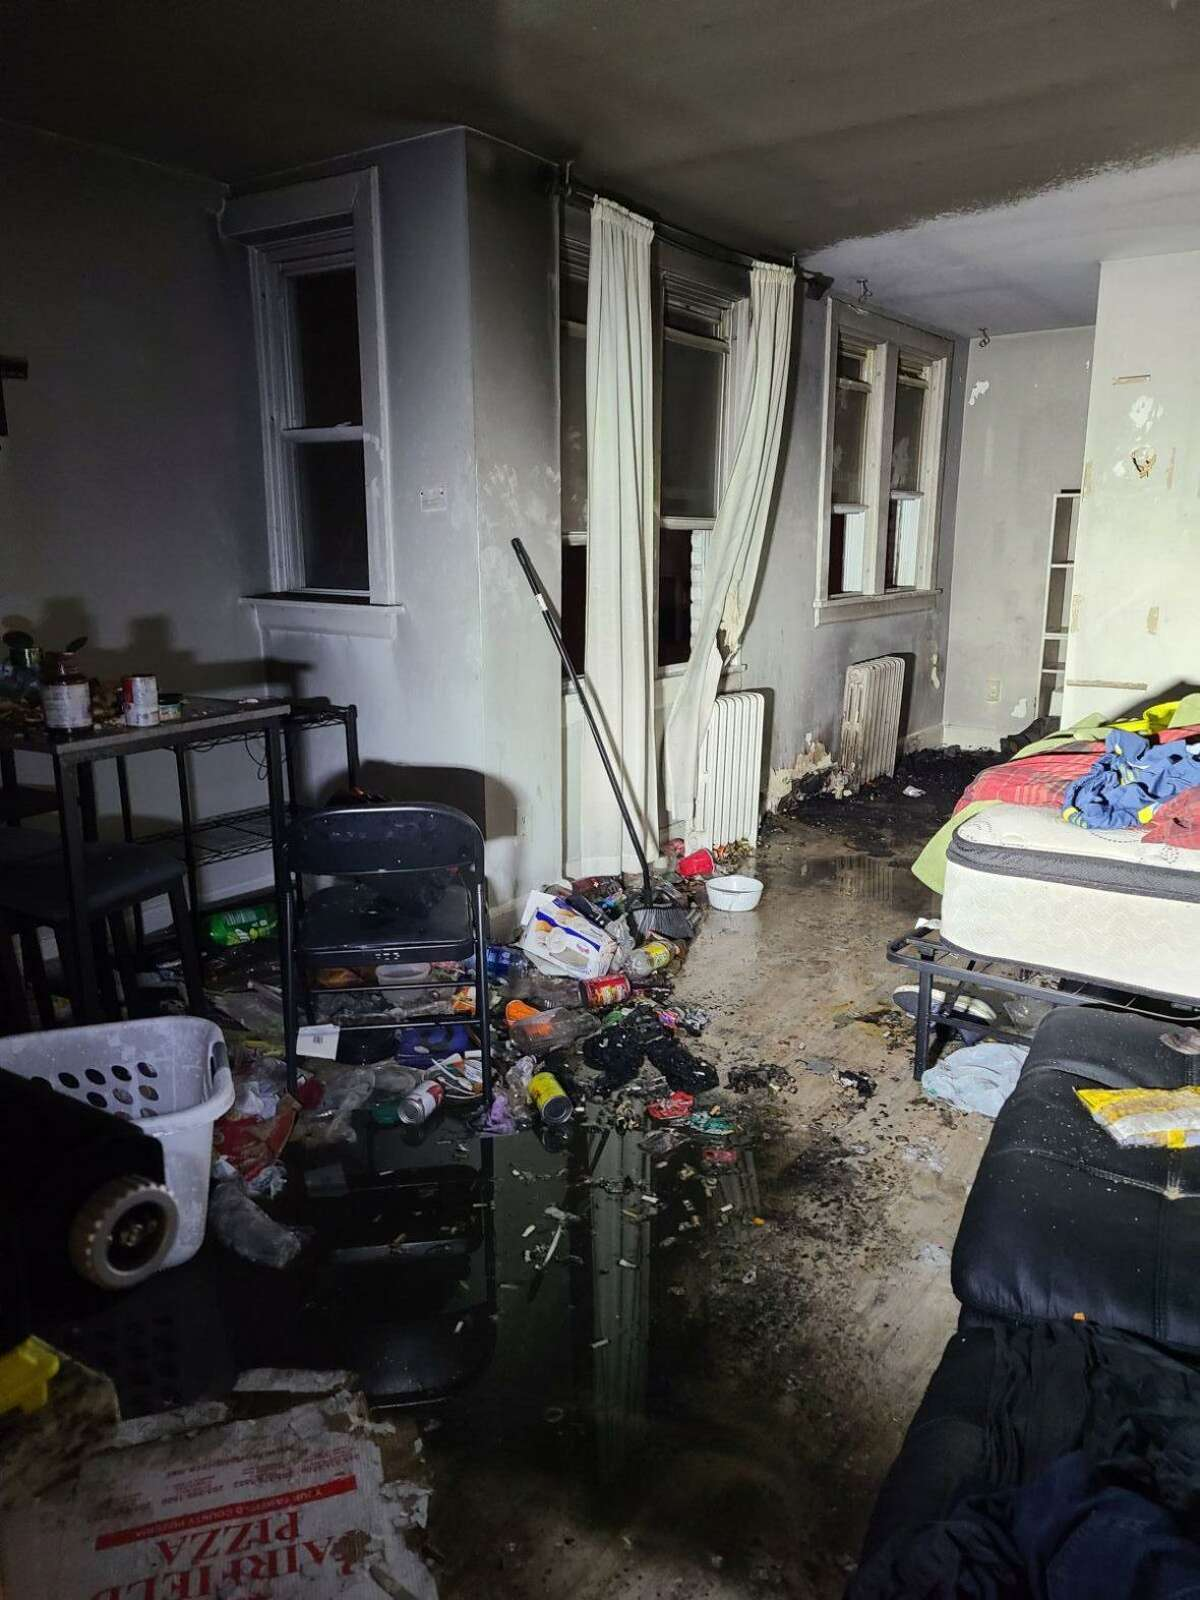 The aftermath of a fire in a Glenbrook Road condominium unit in Stamford, Conn., on Sunday, March 28, 2021.